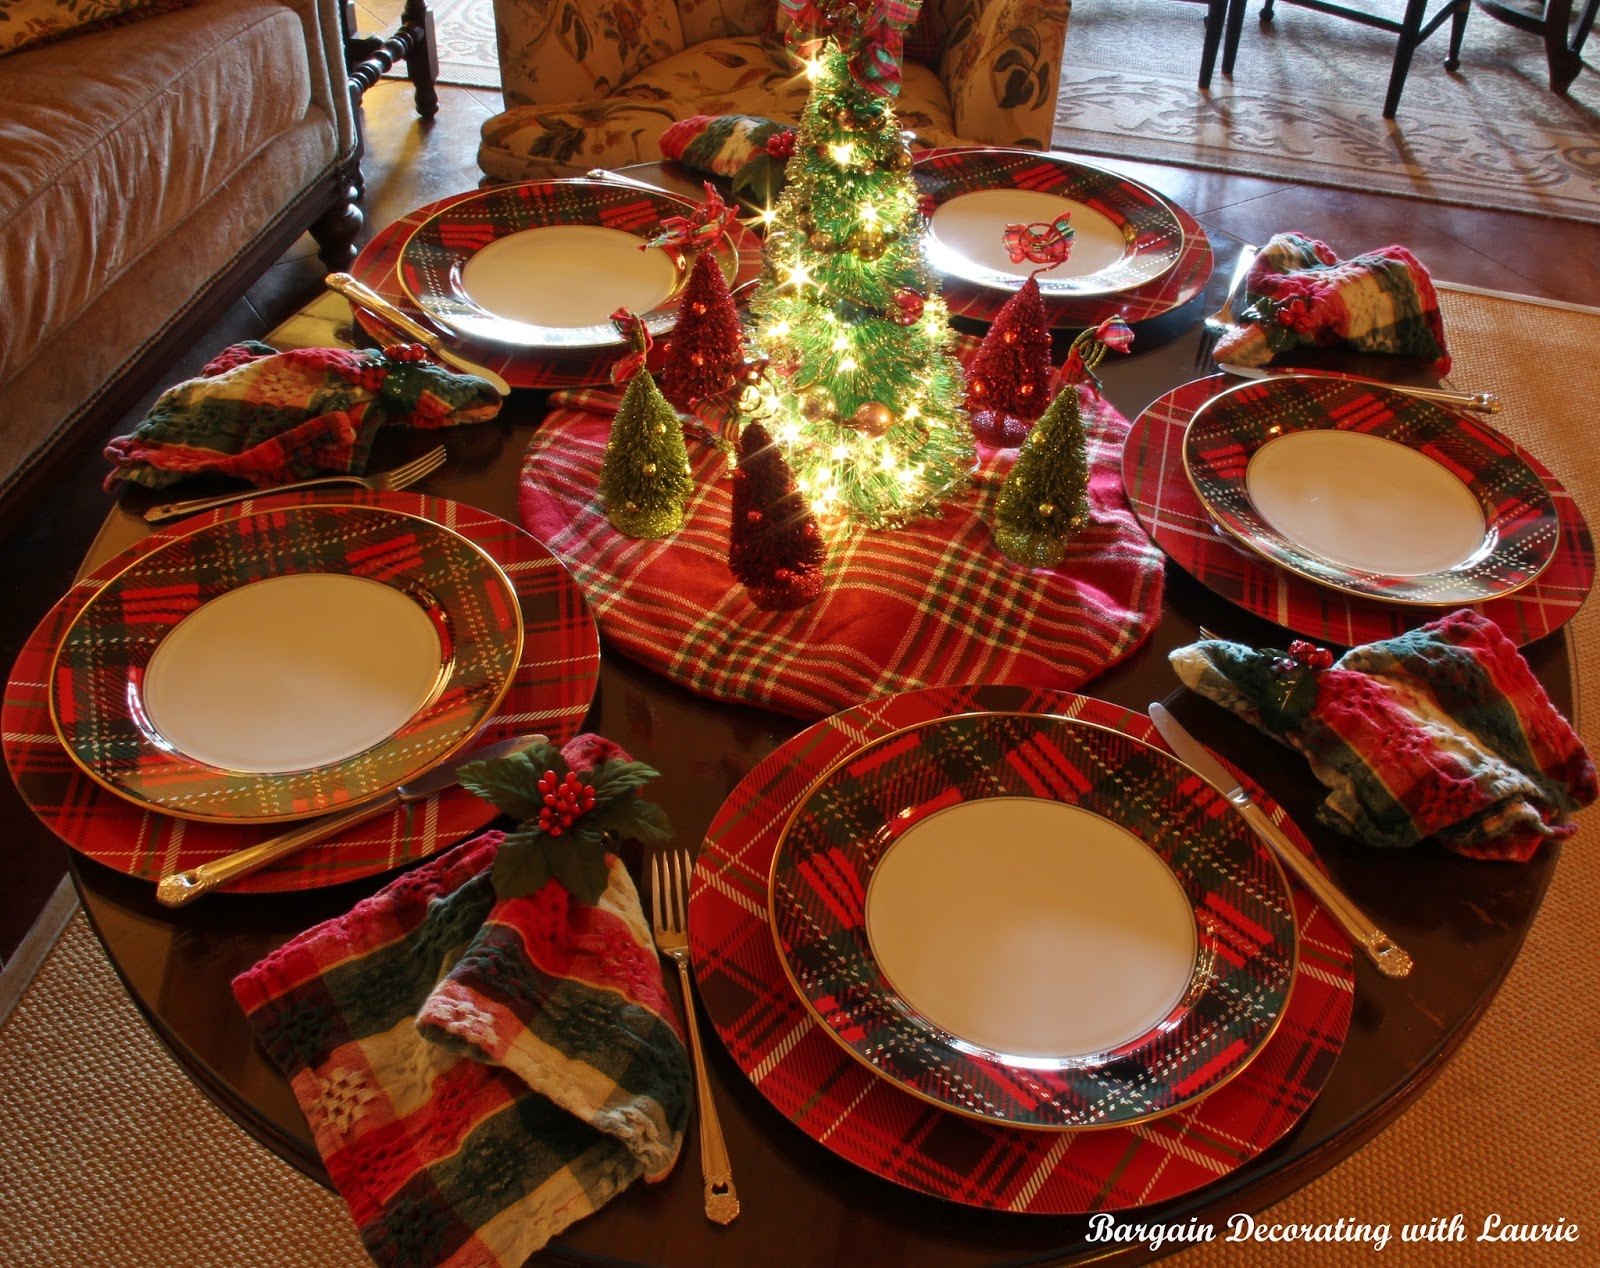 Bargain Decorating With Laurie Christmas Eve Tablescapes